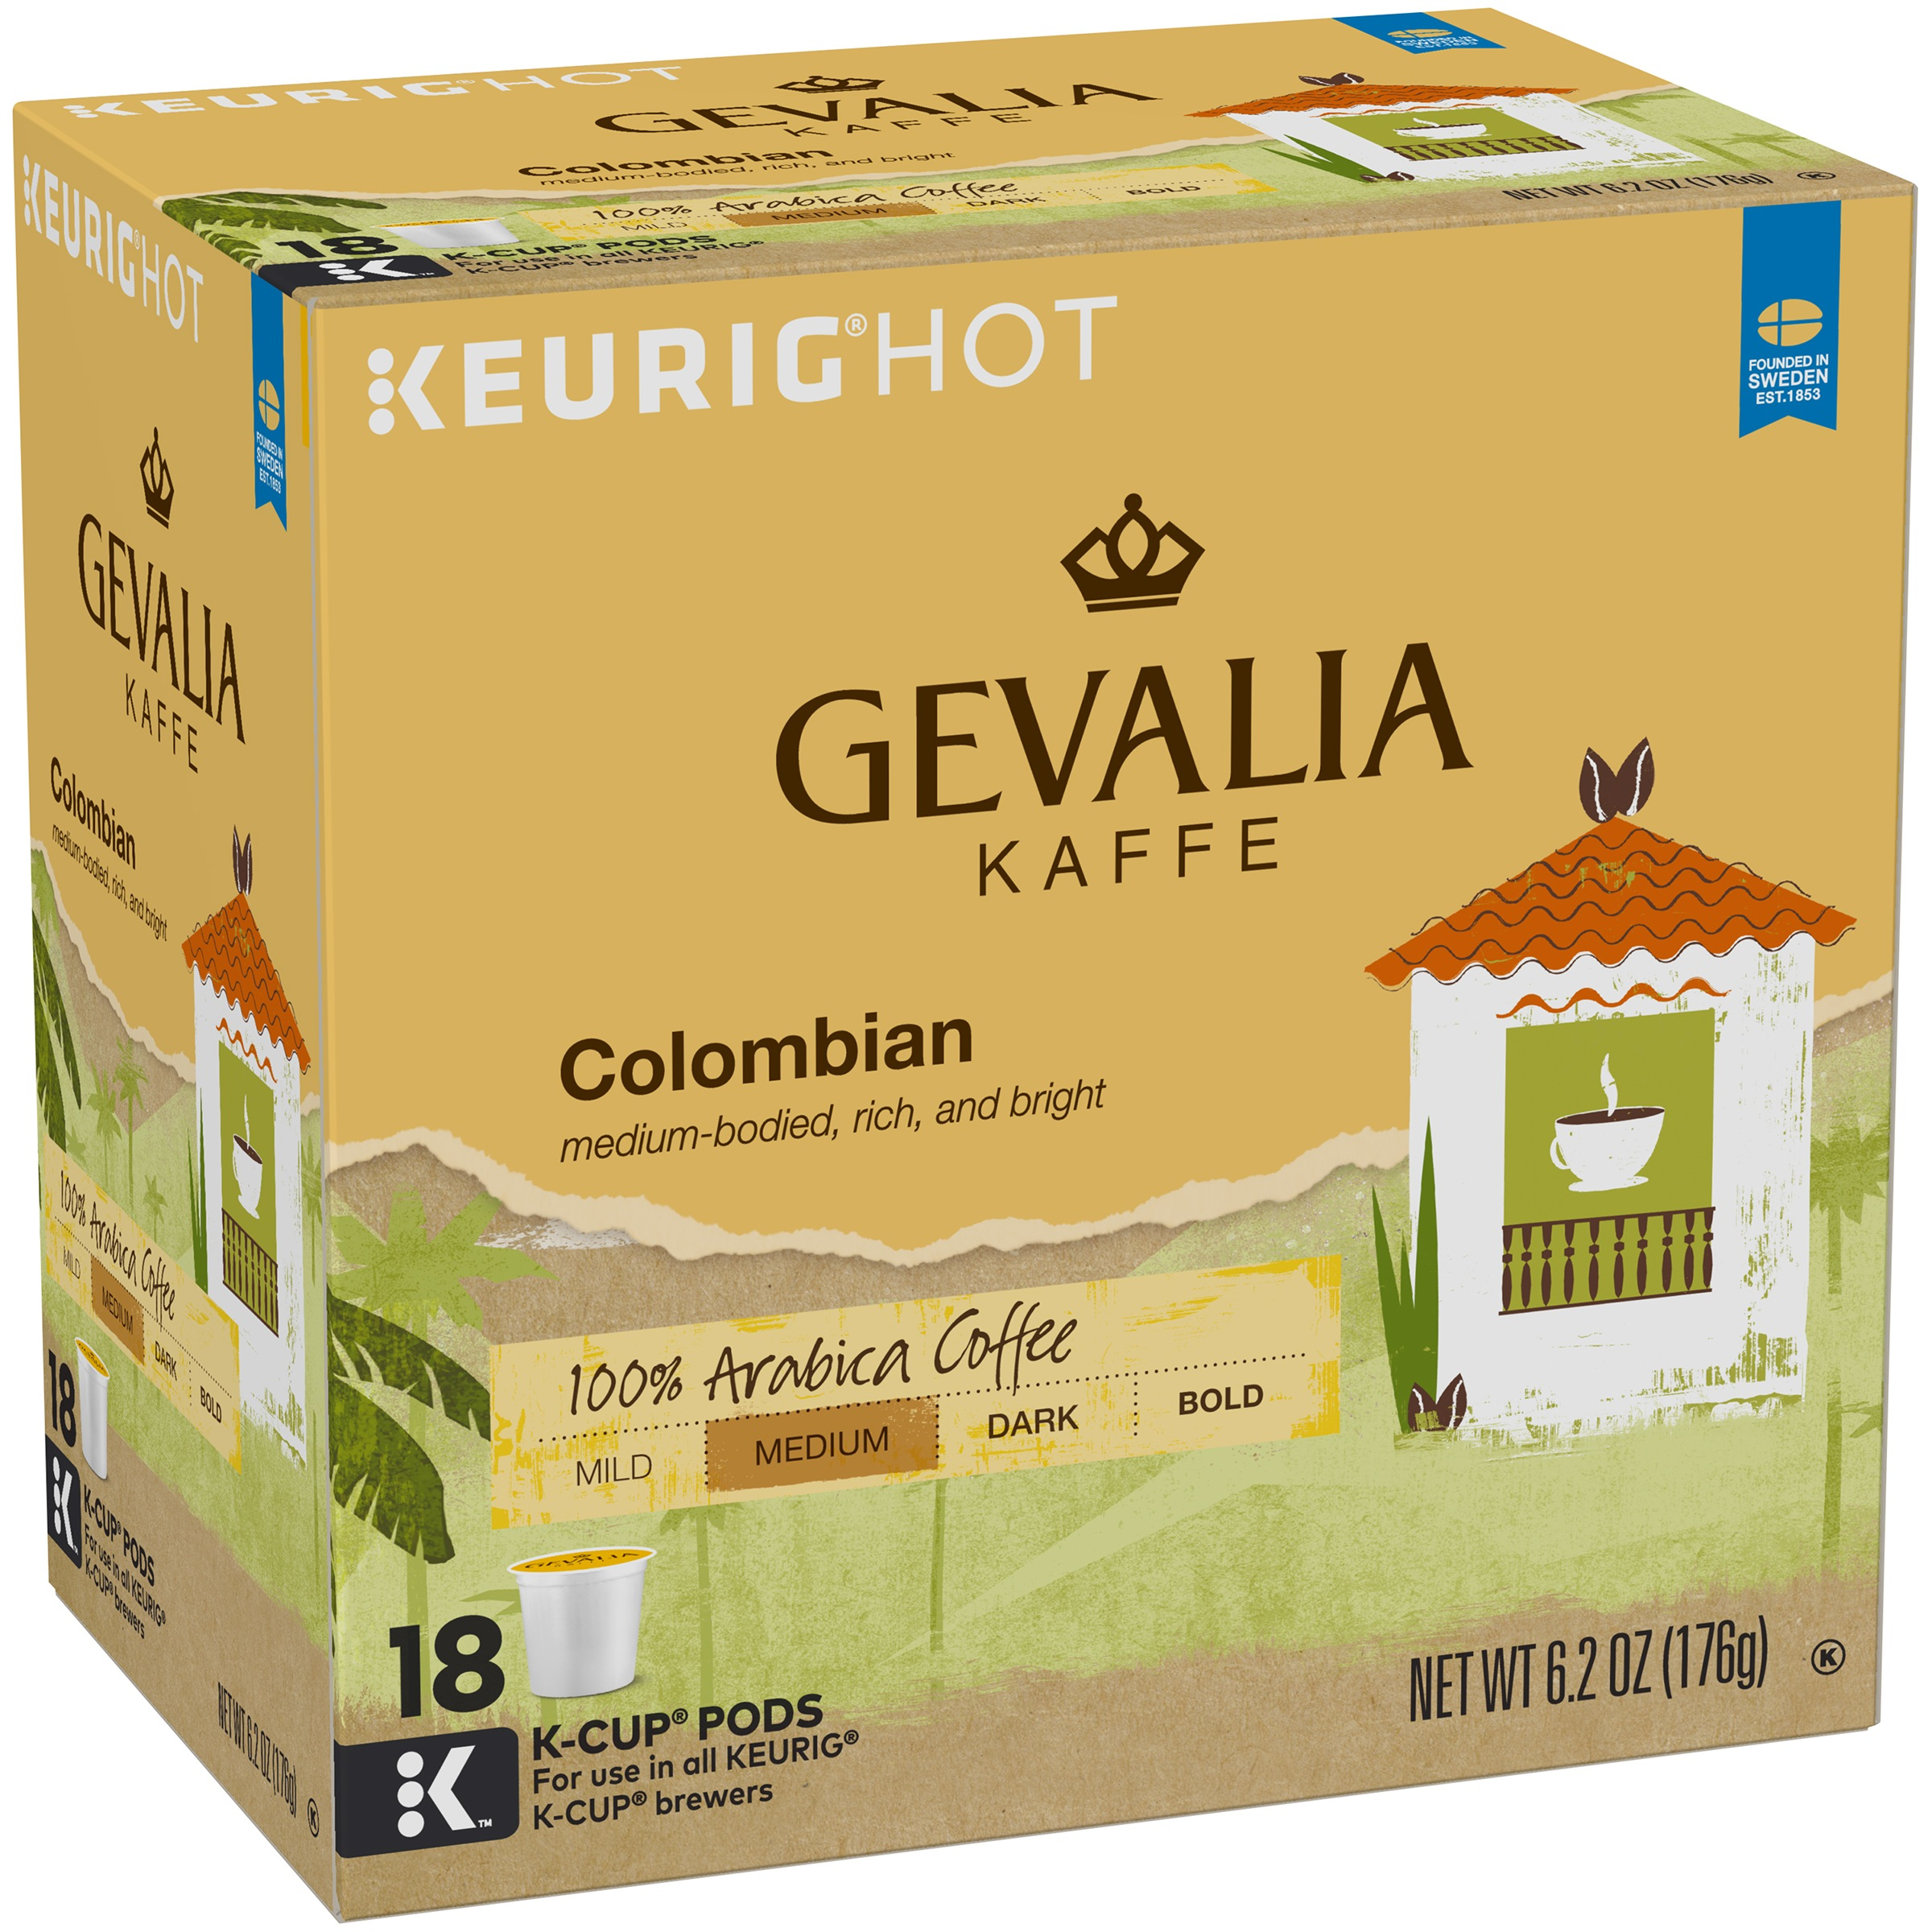 Gevalia Colombian Coffee K-Cup® Pods 18 ct Box